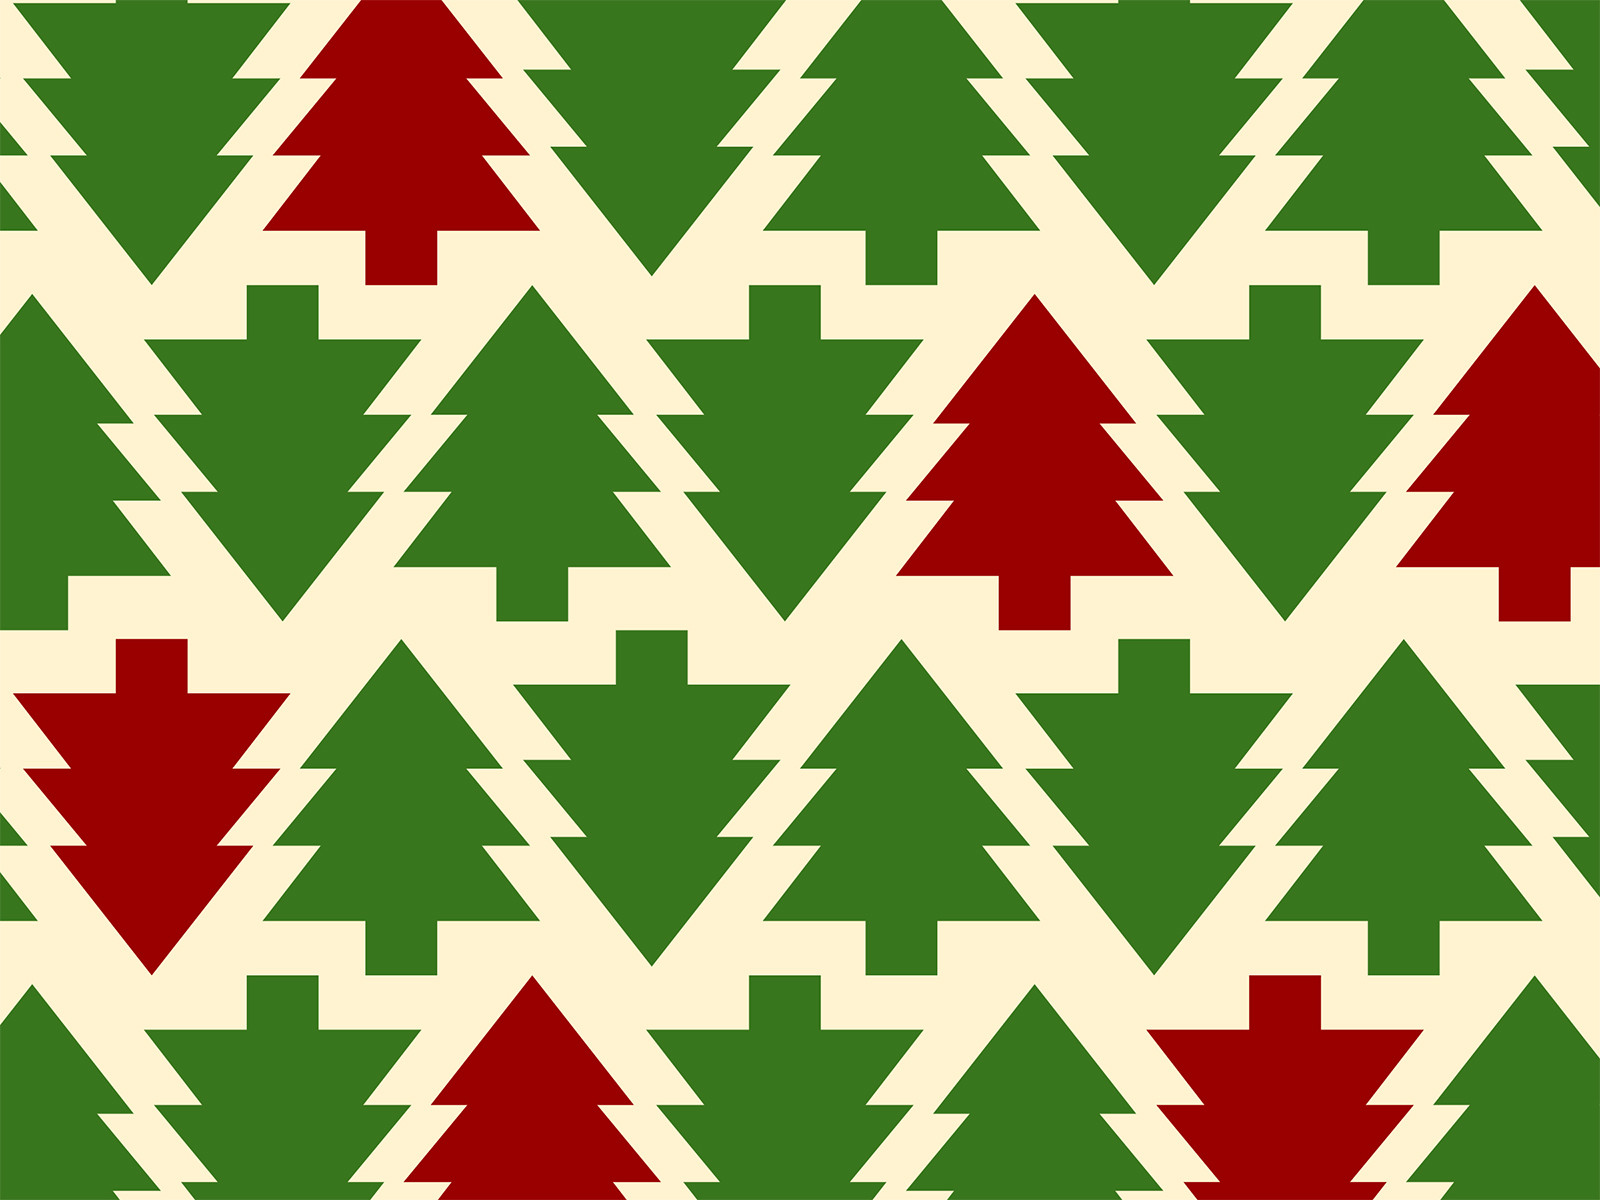 Christmas Tree Pattern Inspirational Christmas Tree Pattern Backgrounds Christmas Green Of Great 46 Images Christmas Tree Pattern